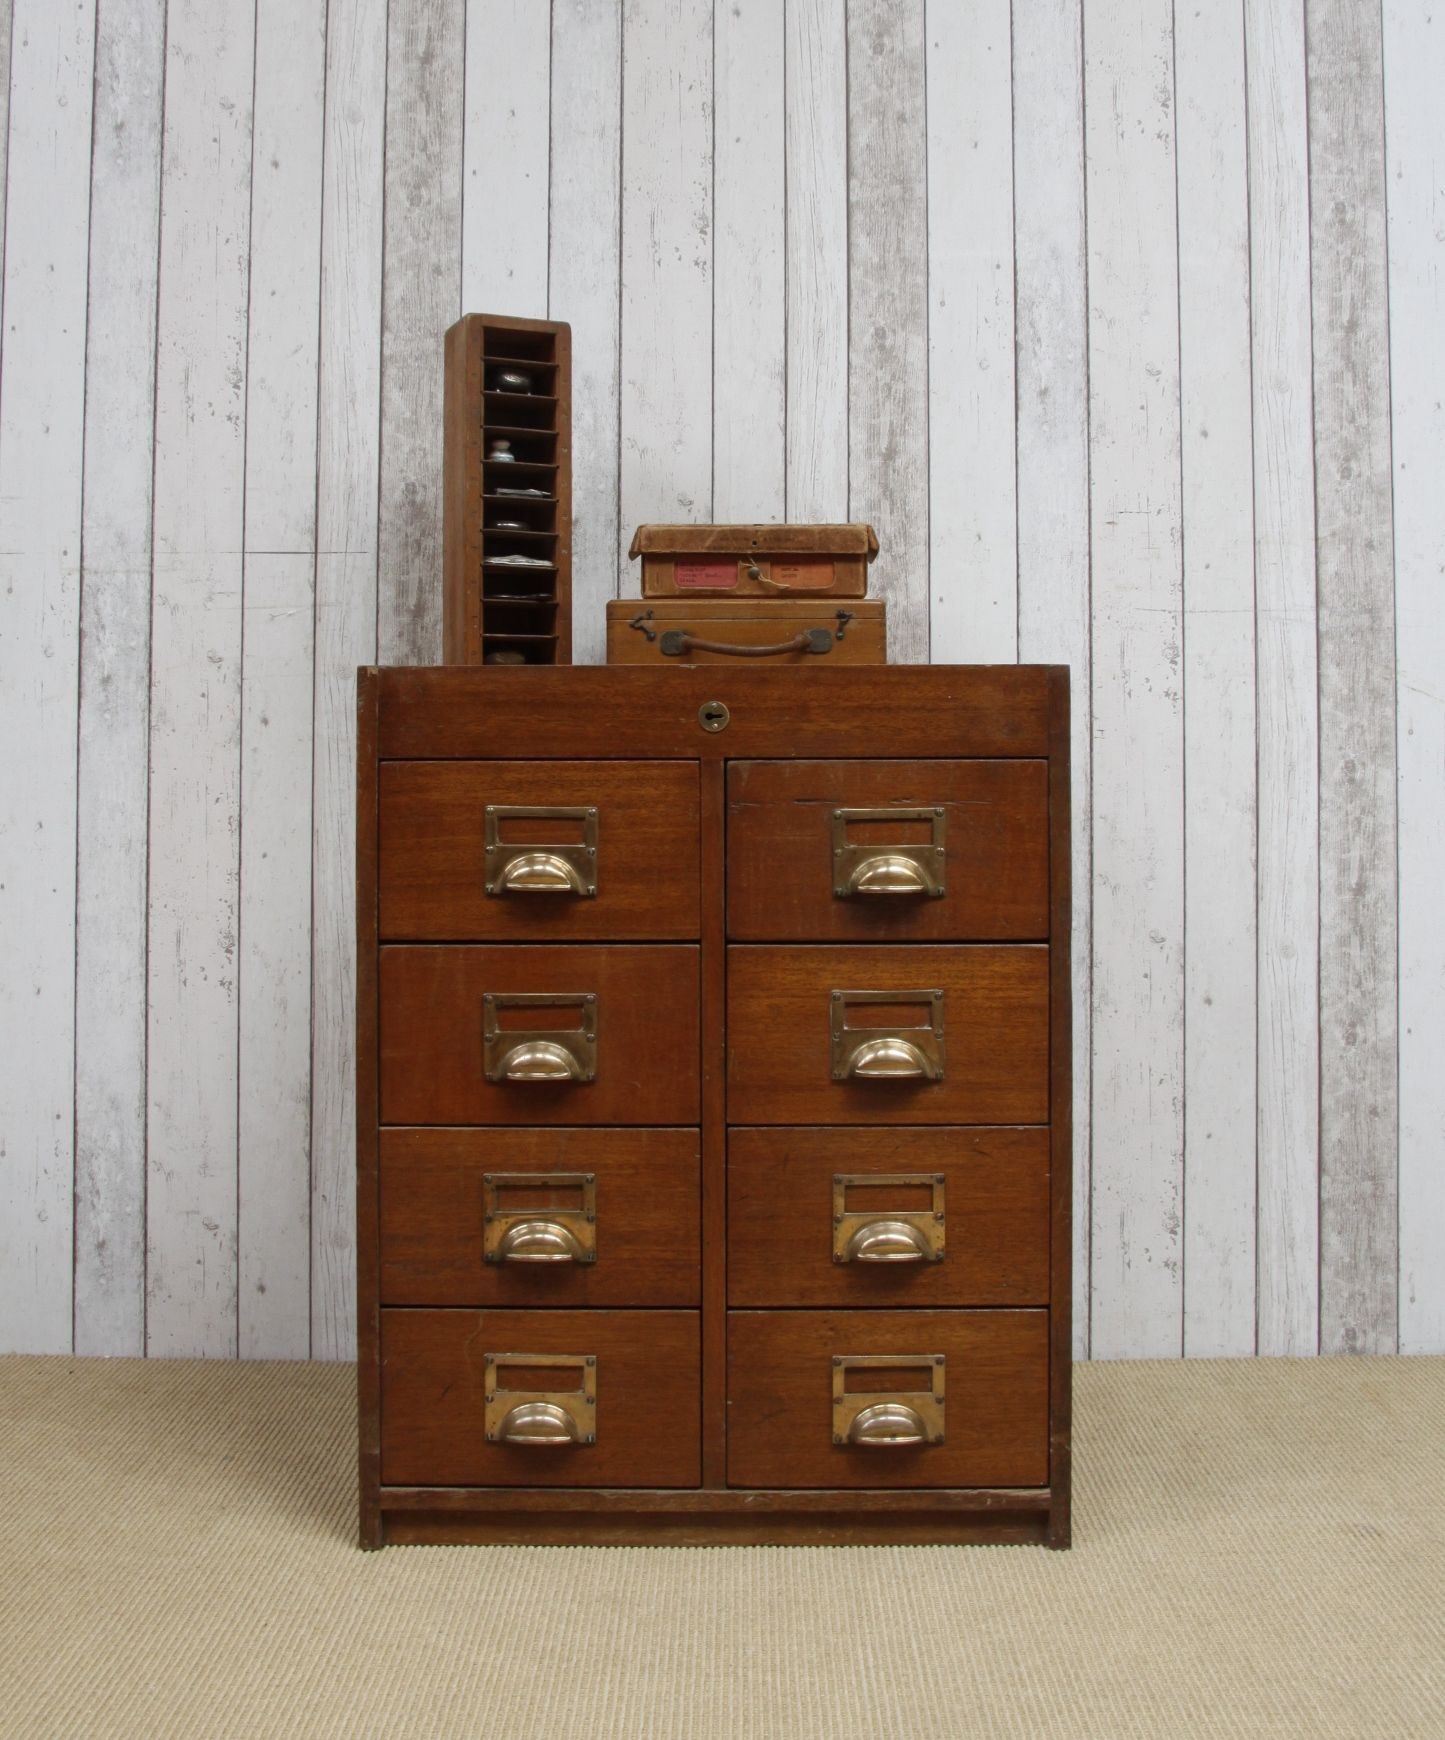 Vintage Oak Office Drawers- £195.00, Available To Purchase